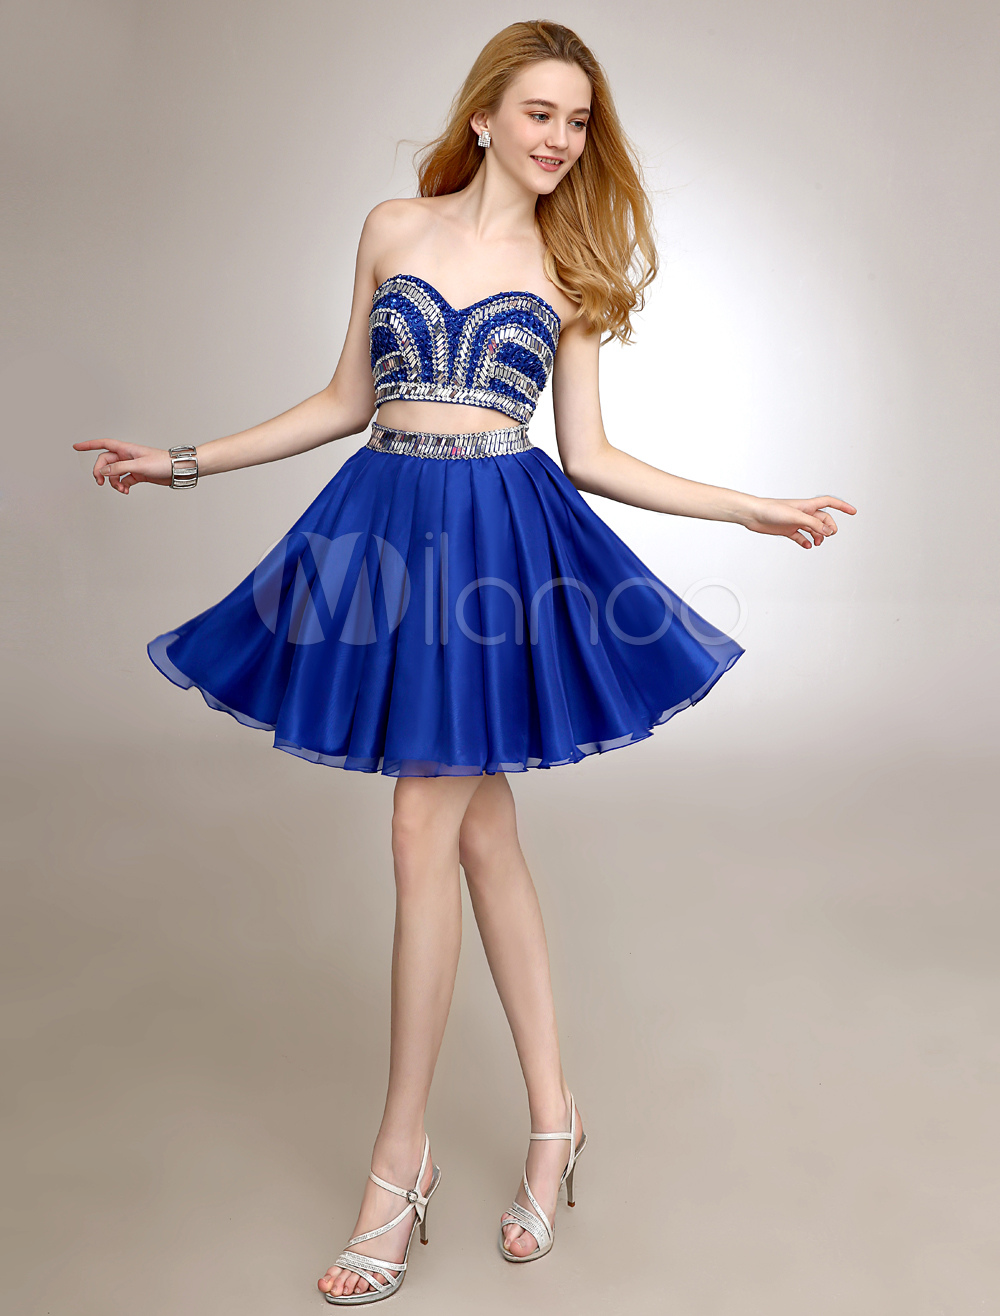 Royal Blue Short Homecoming Dress With Sequined Chiffon (Wedding) photo